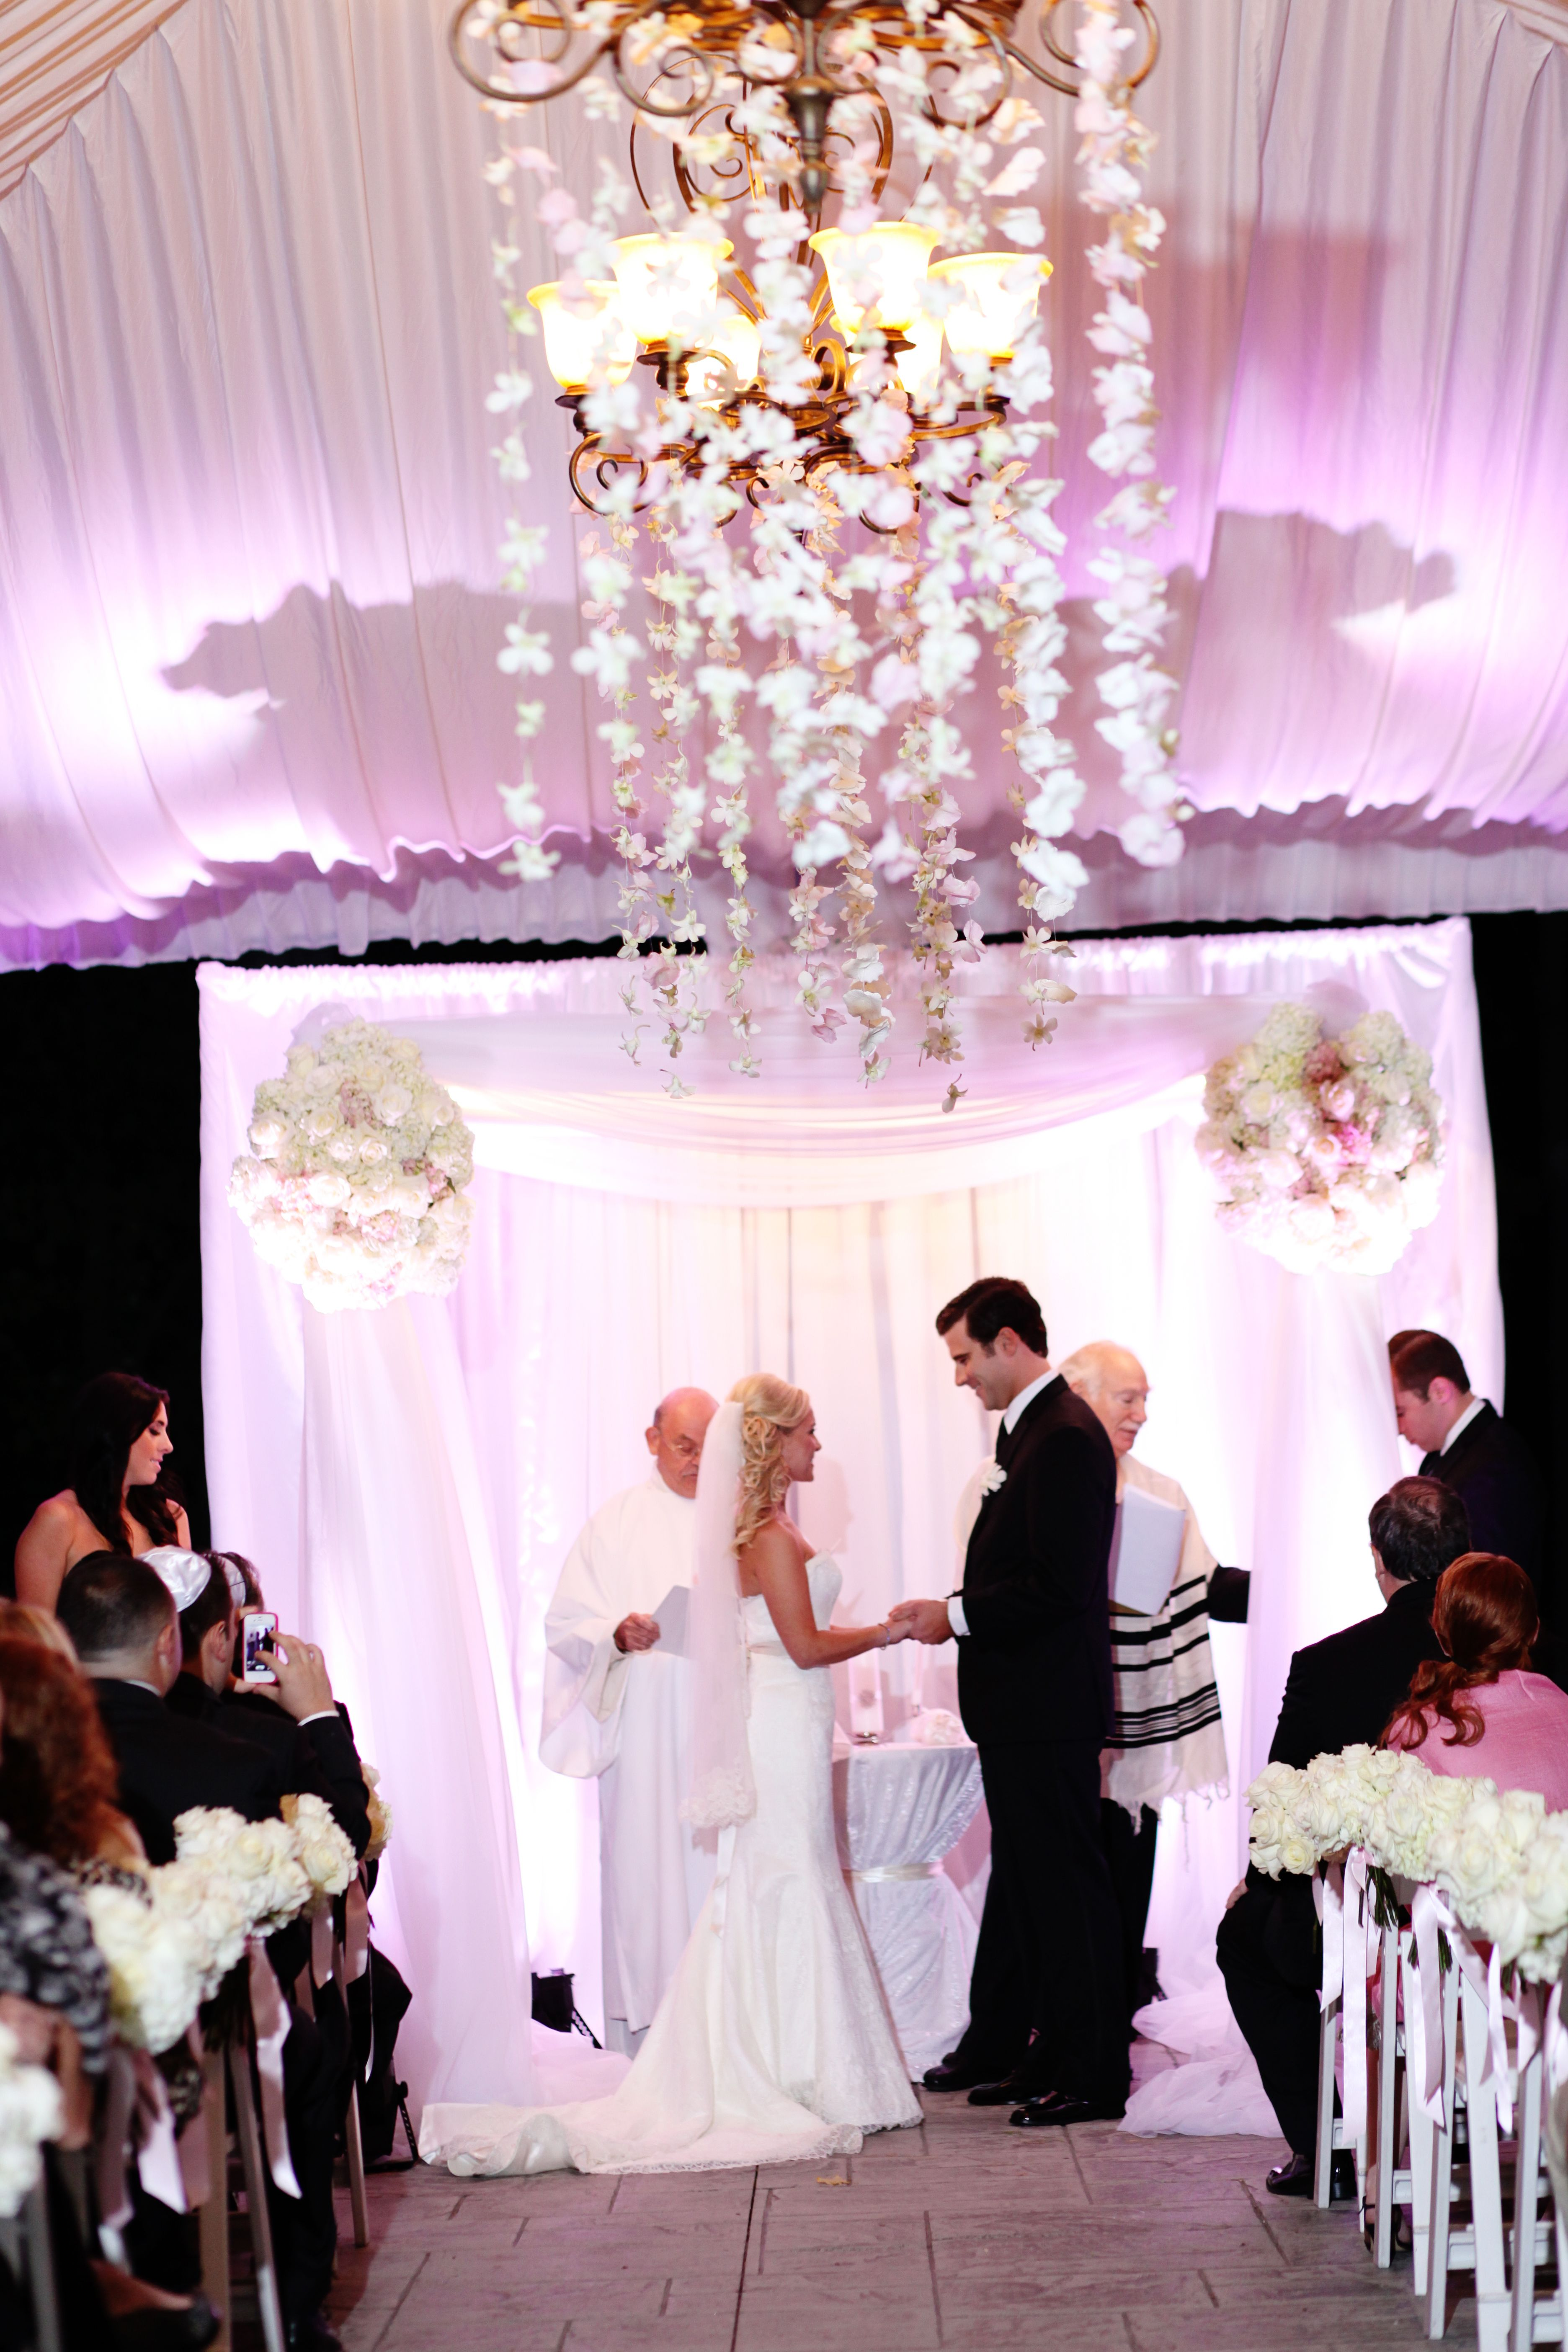 using events draping to additional for table cover drapes hang mitton and white creative hire items ceiling backdrop how hot top blog pink hall